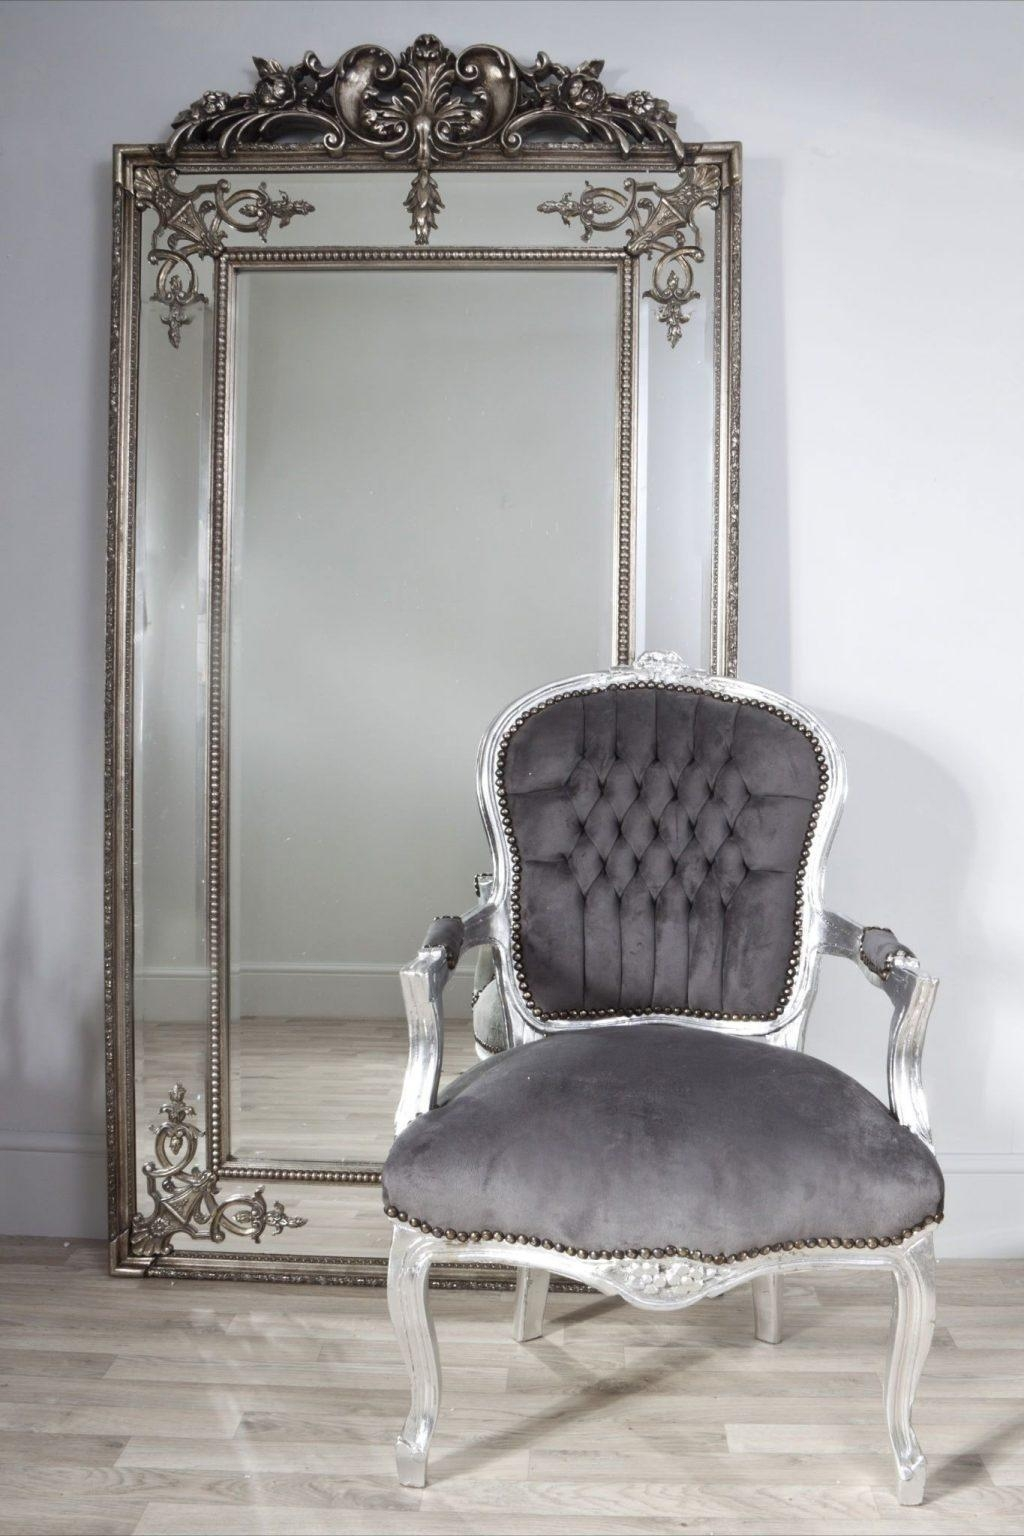 Giant Mirrors For Sale 126 Outstanding For Large Frame Gold Throughout Ornate Mirrors For Sale (Image 10 of 20)